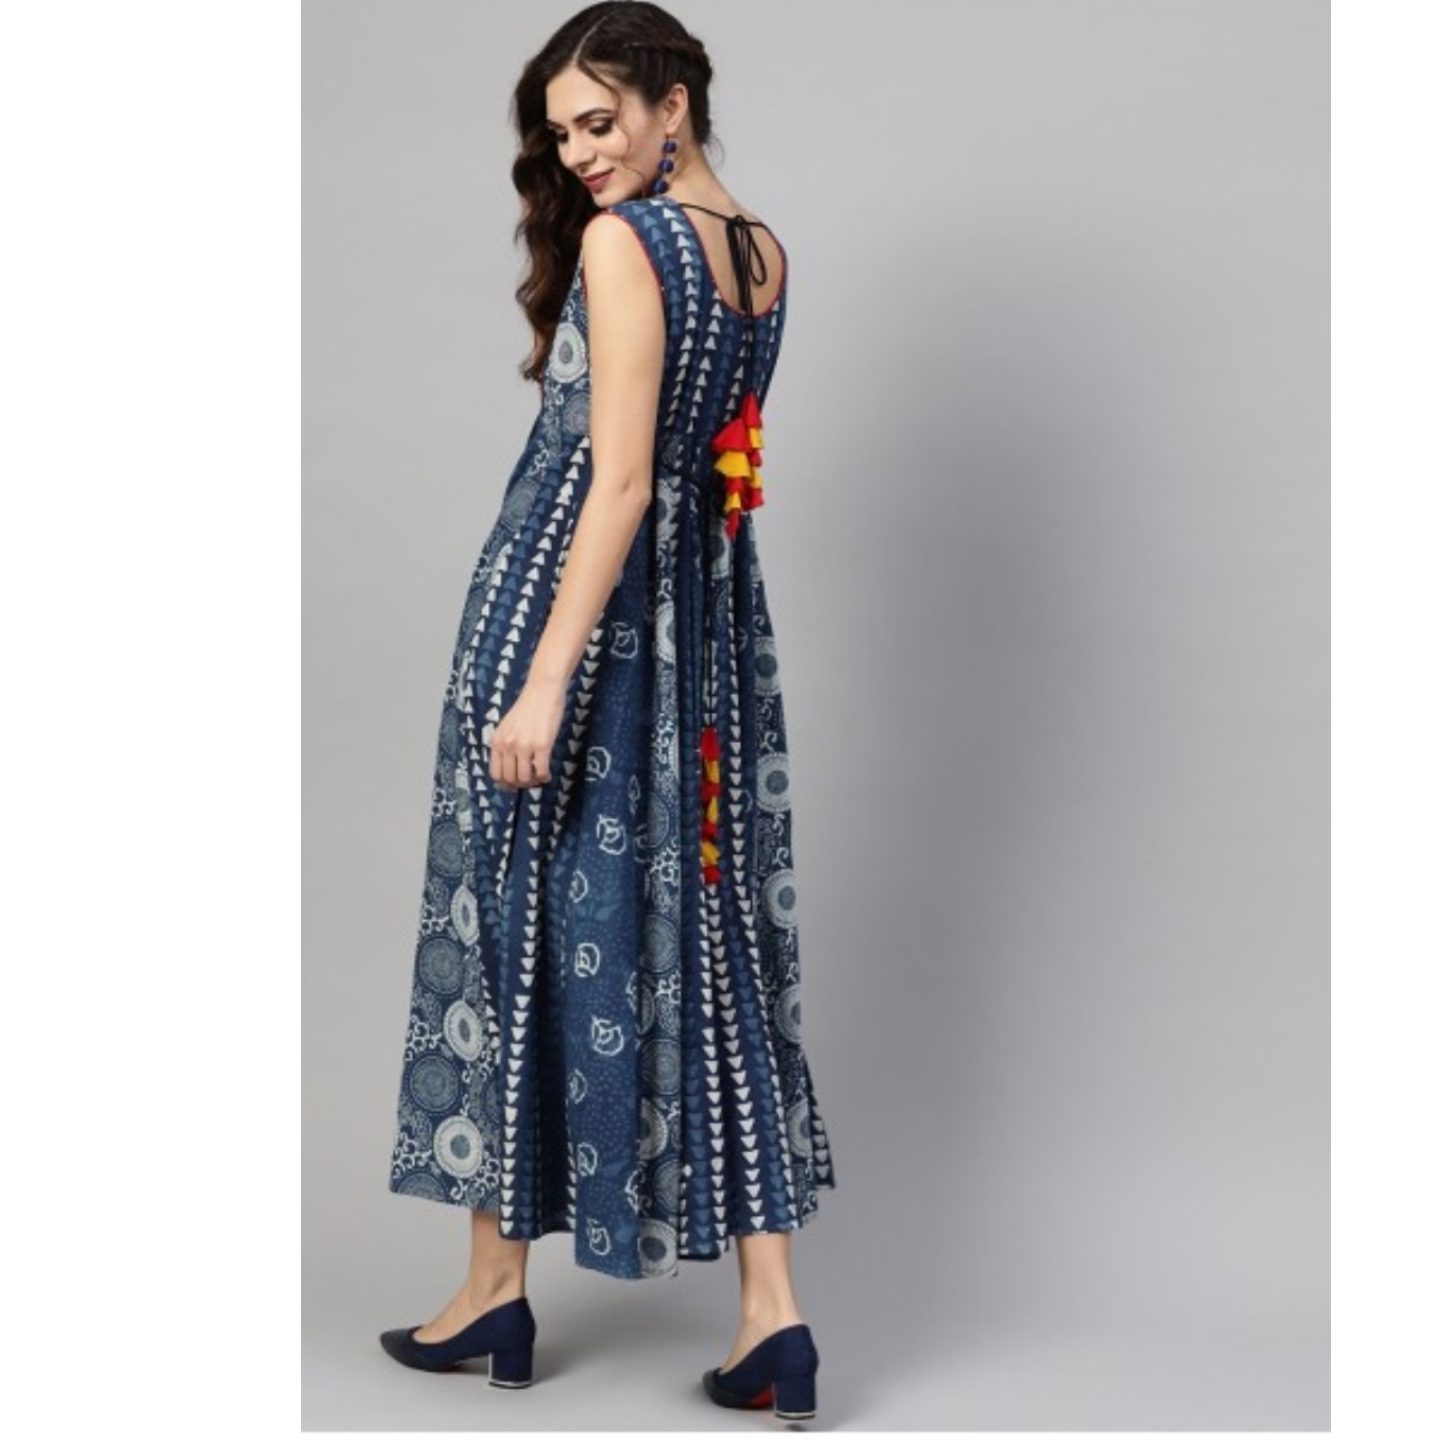 Blue & White Floral Printed Sleeveless Maxi With Tassel Details